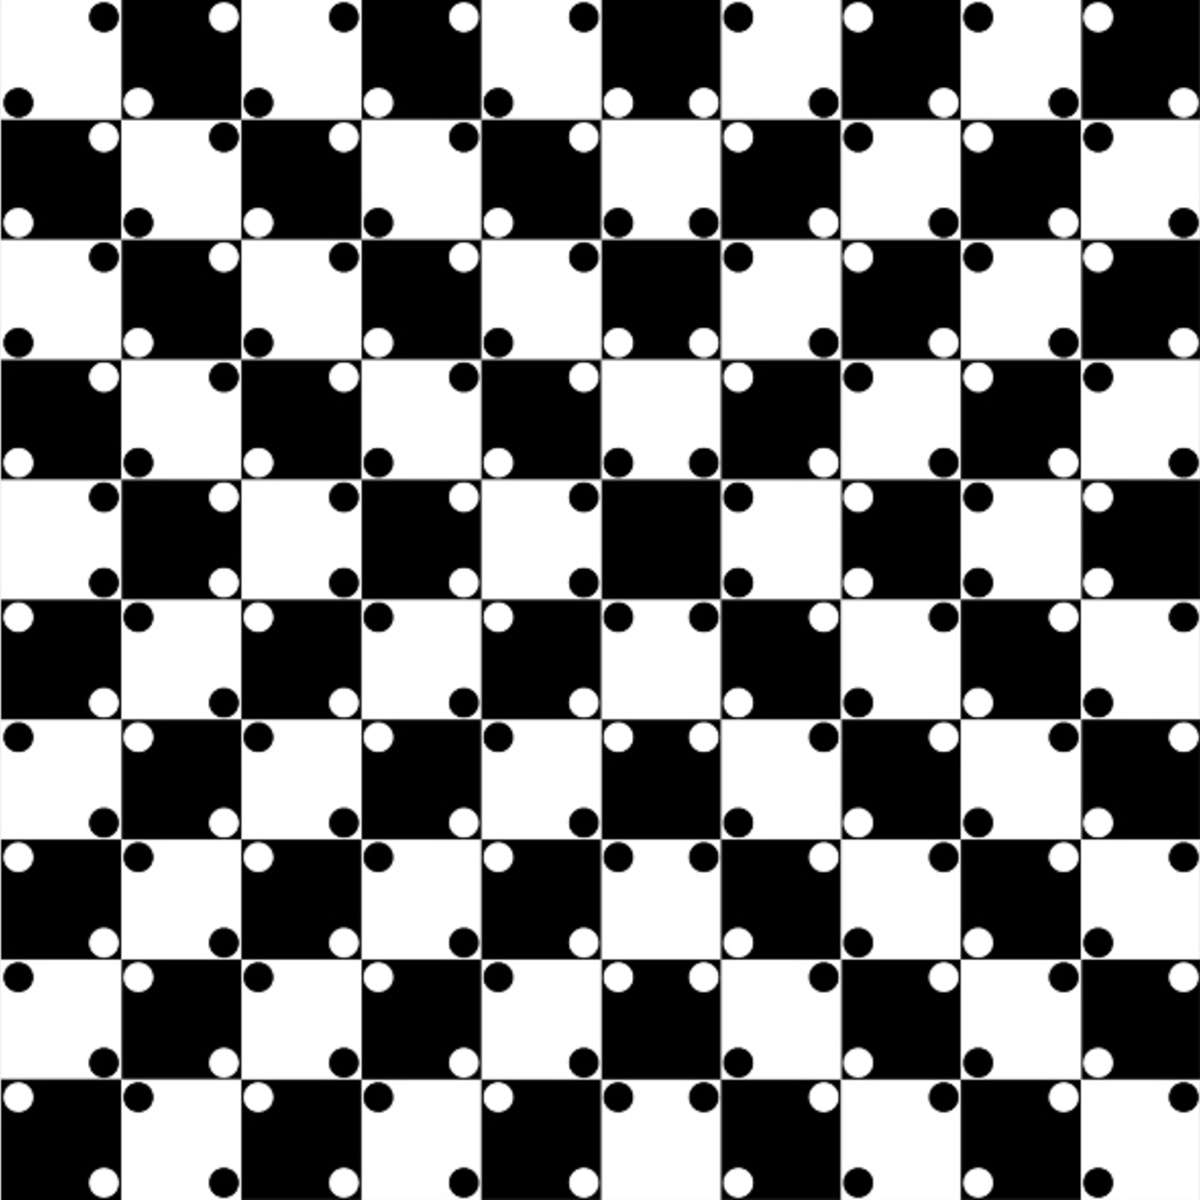 checkerboard_illusion_0.jpg